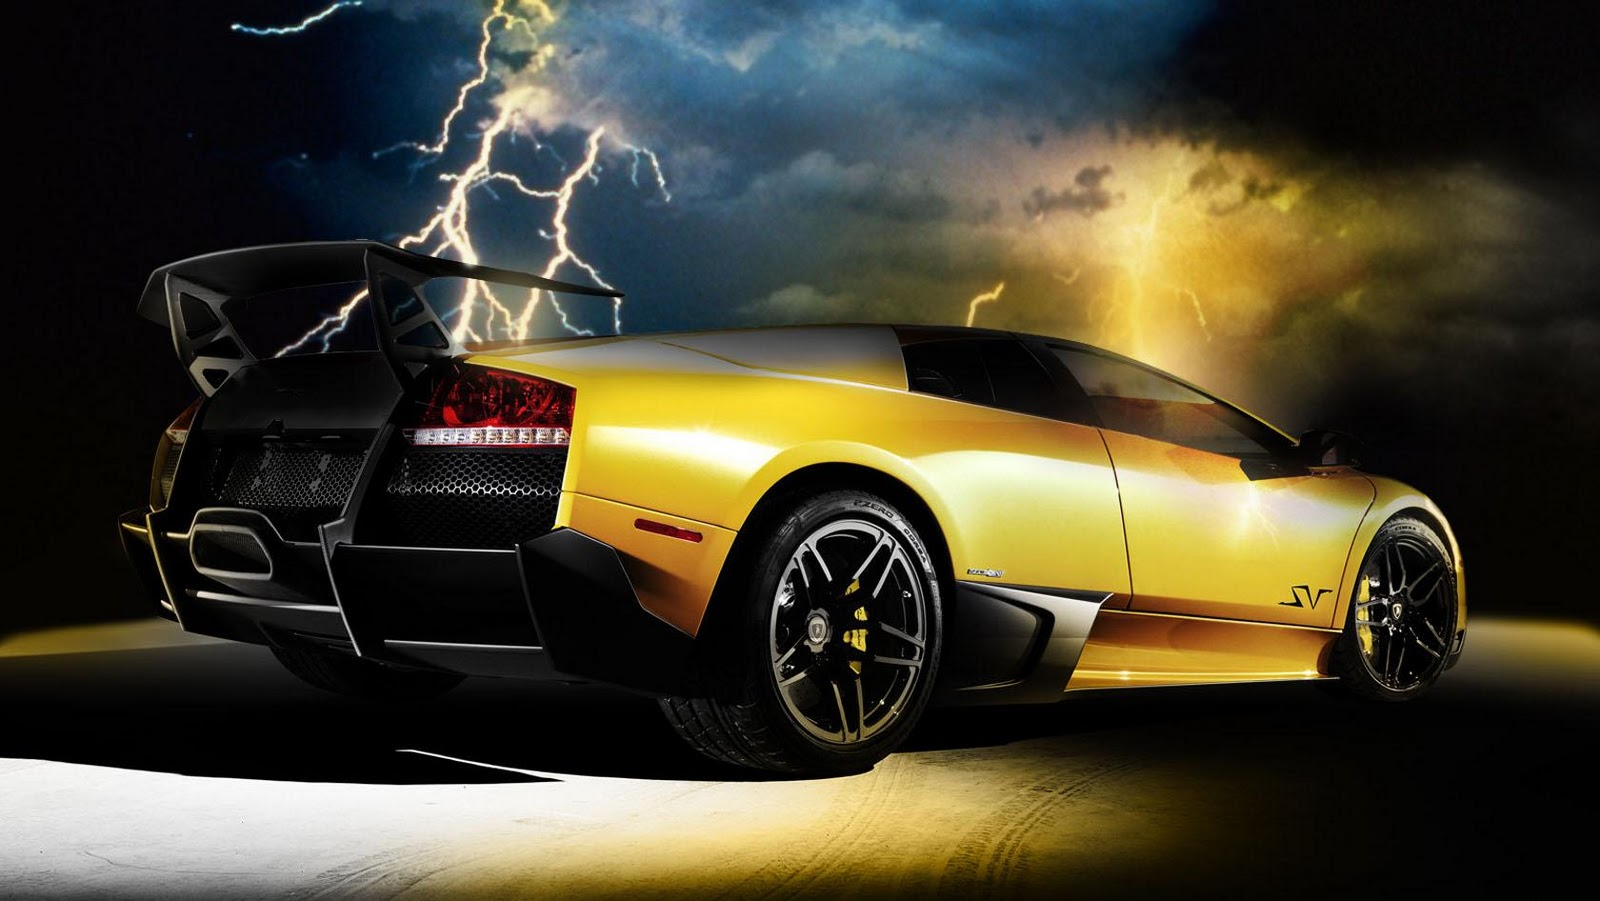 Gold And Black Lamborghini Wallpaper 1 Hd Wallpaper